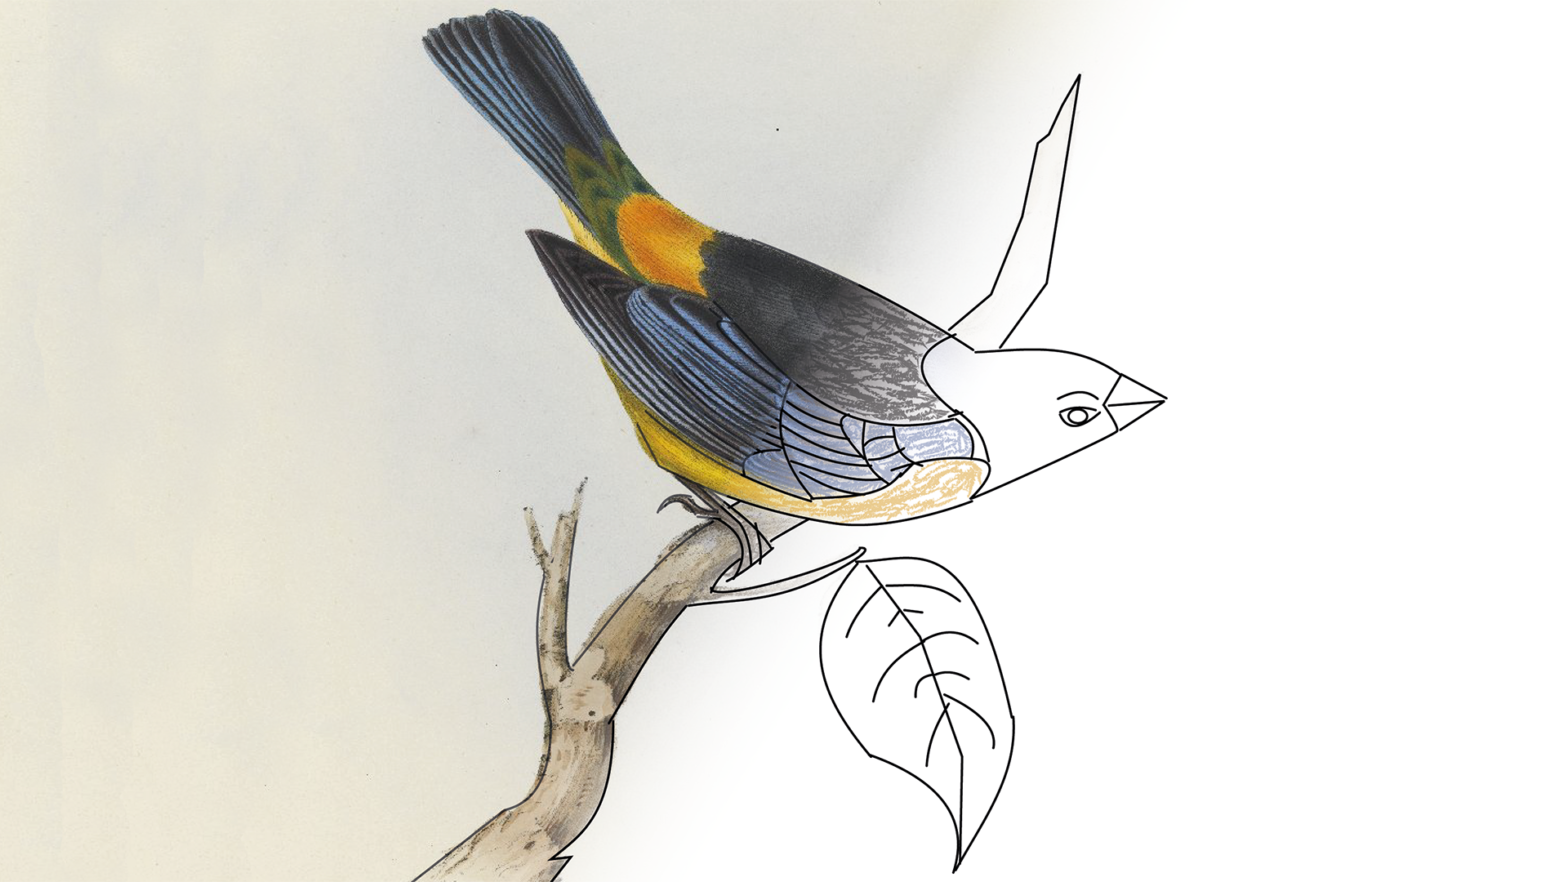 Illustration of a birds on a branch being coloured in with pencils.